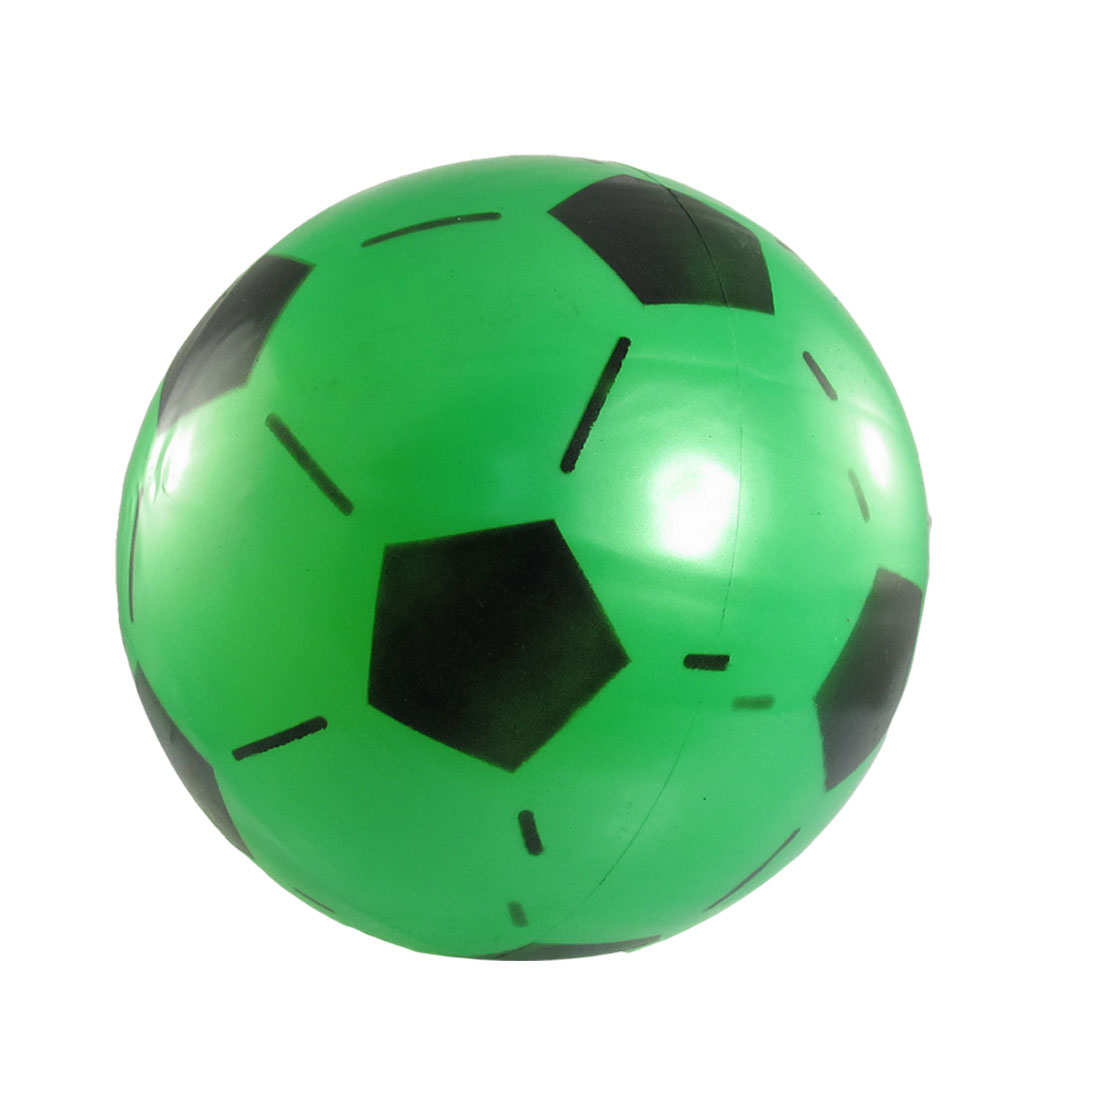 Green Black Emulational PVC Soccer Football Toy for Child